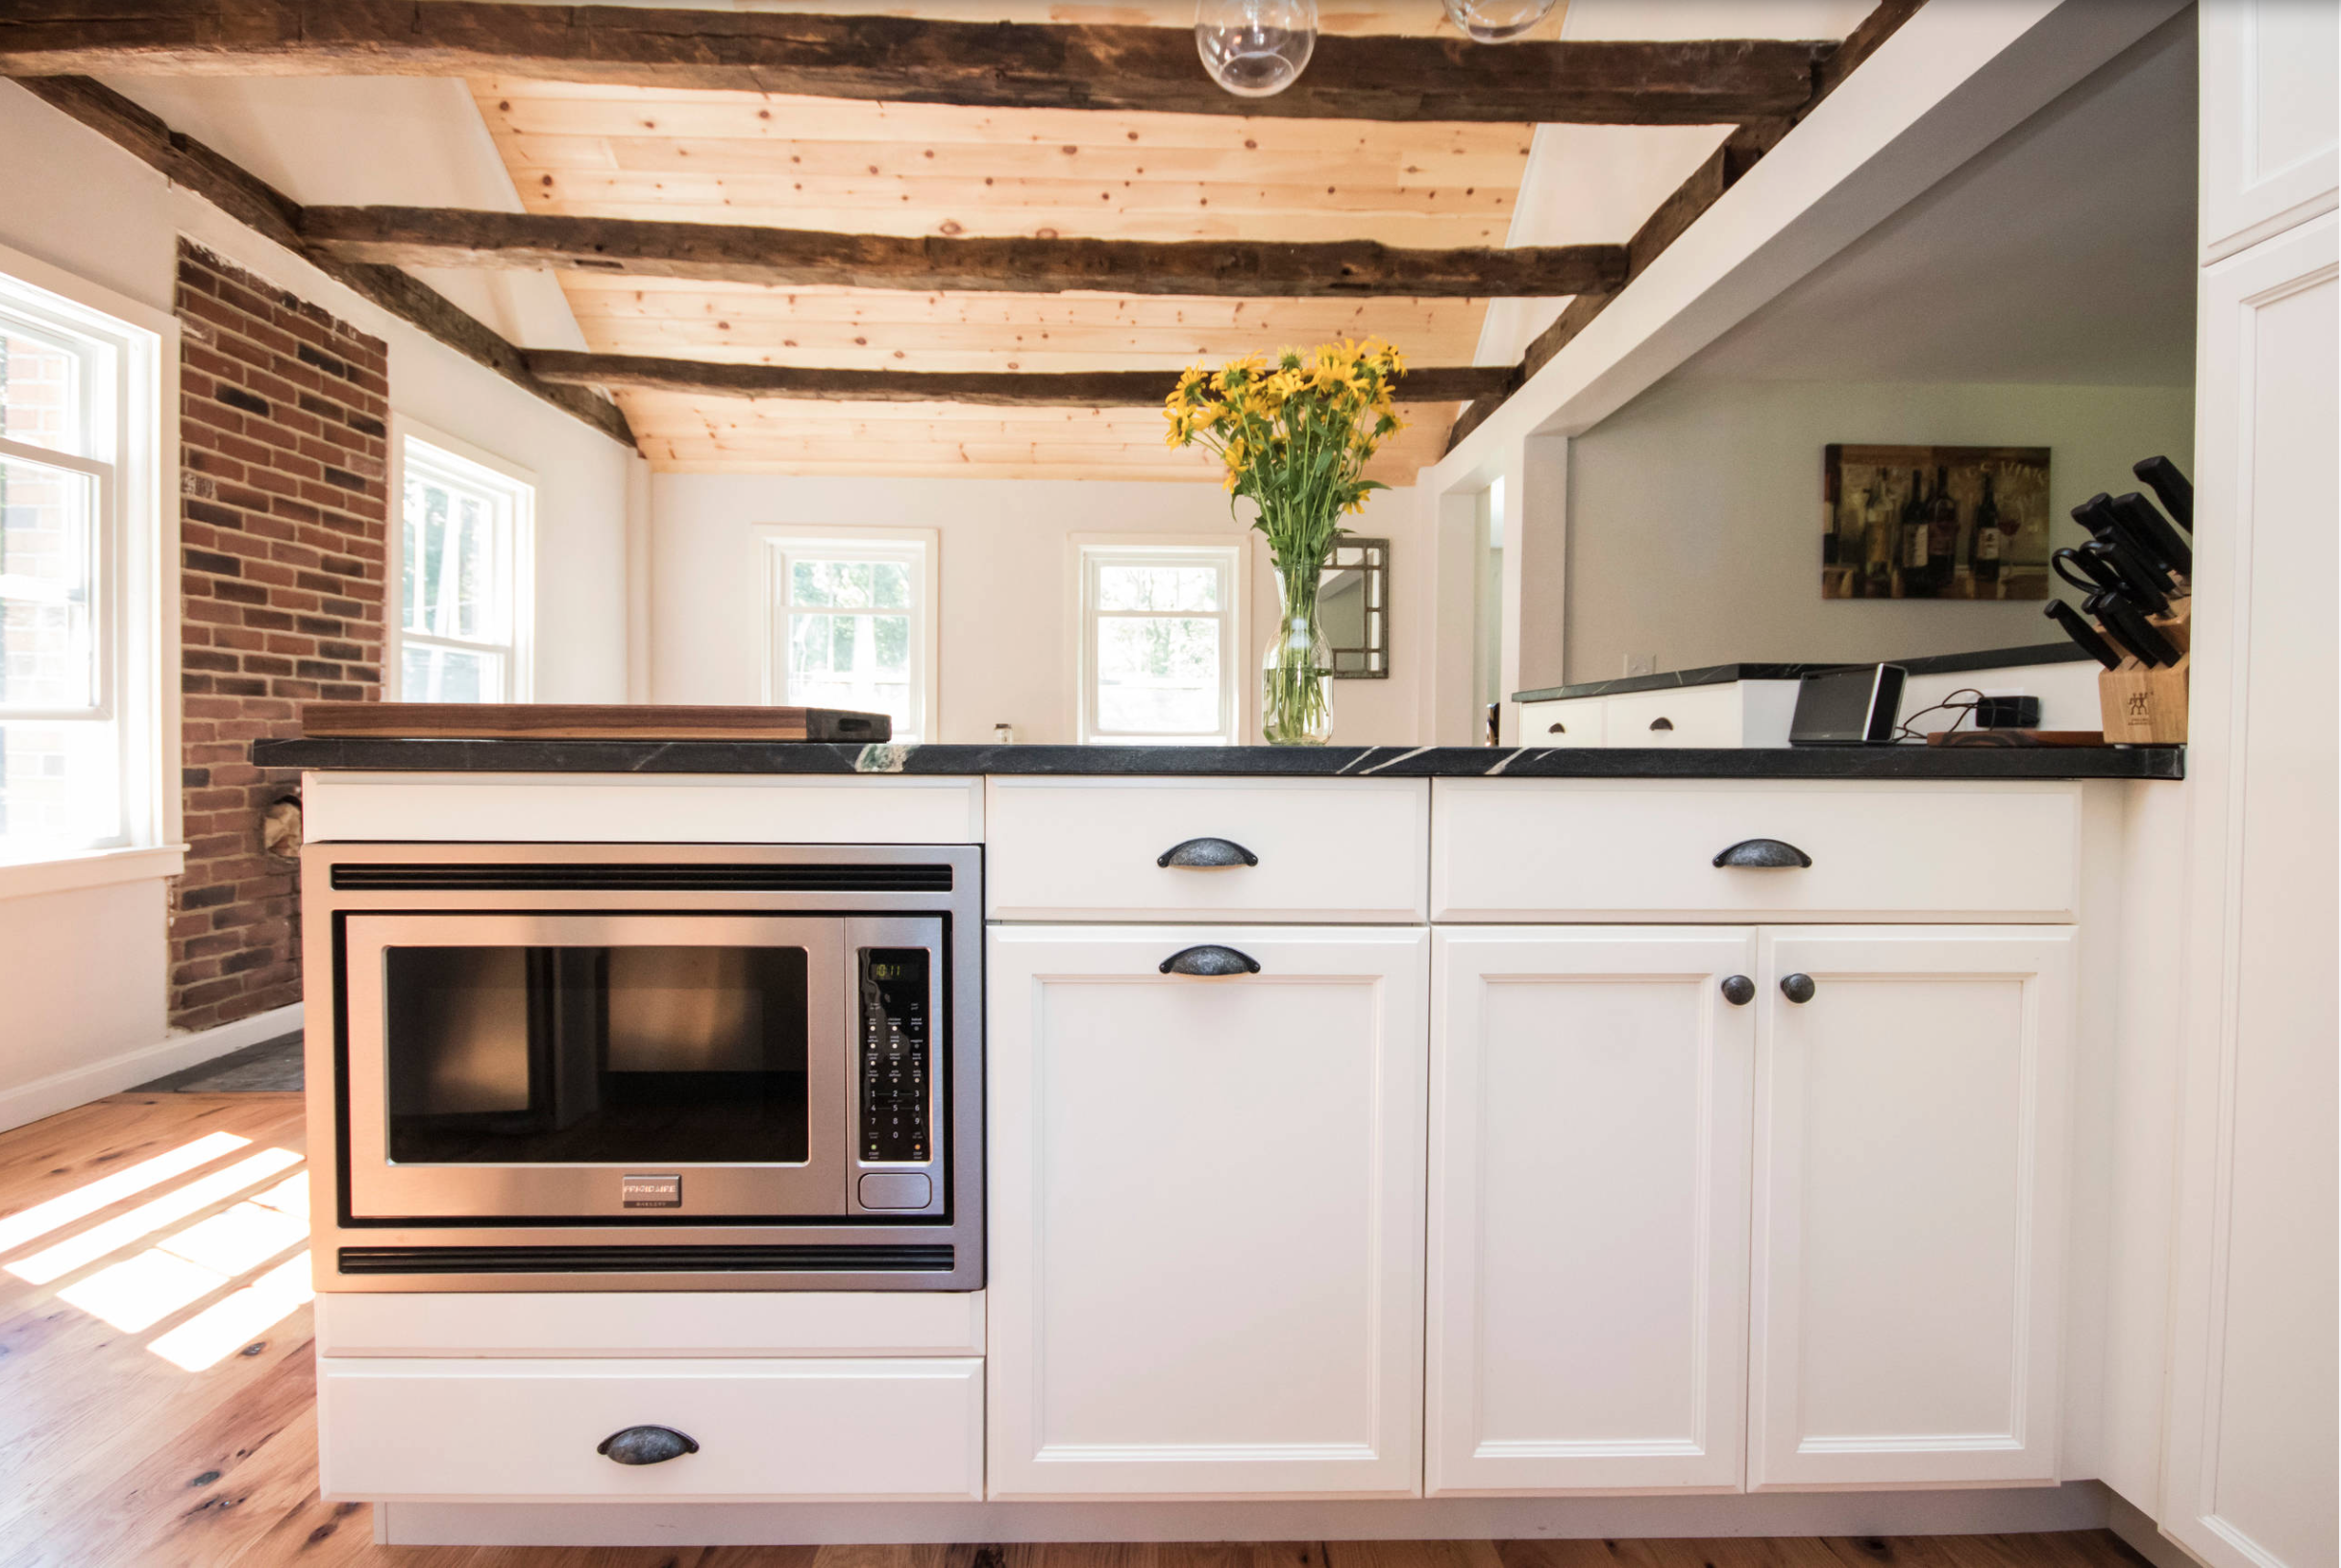 Beautiful Rustic Kitchen Remodel Featuring Canyon Creek Cabinet Company  Katana Maple Cabinets In An Icing Finish